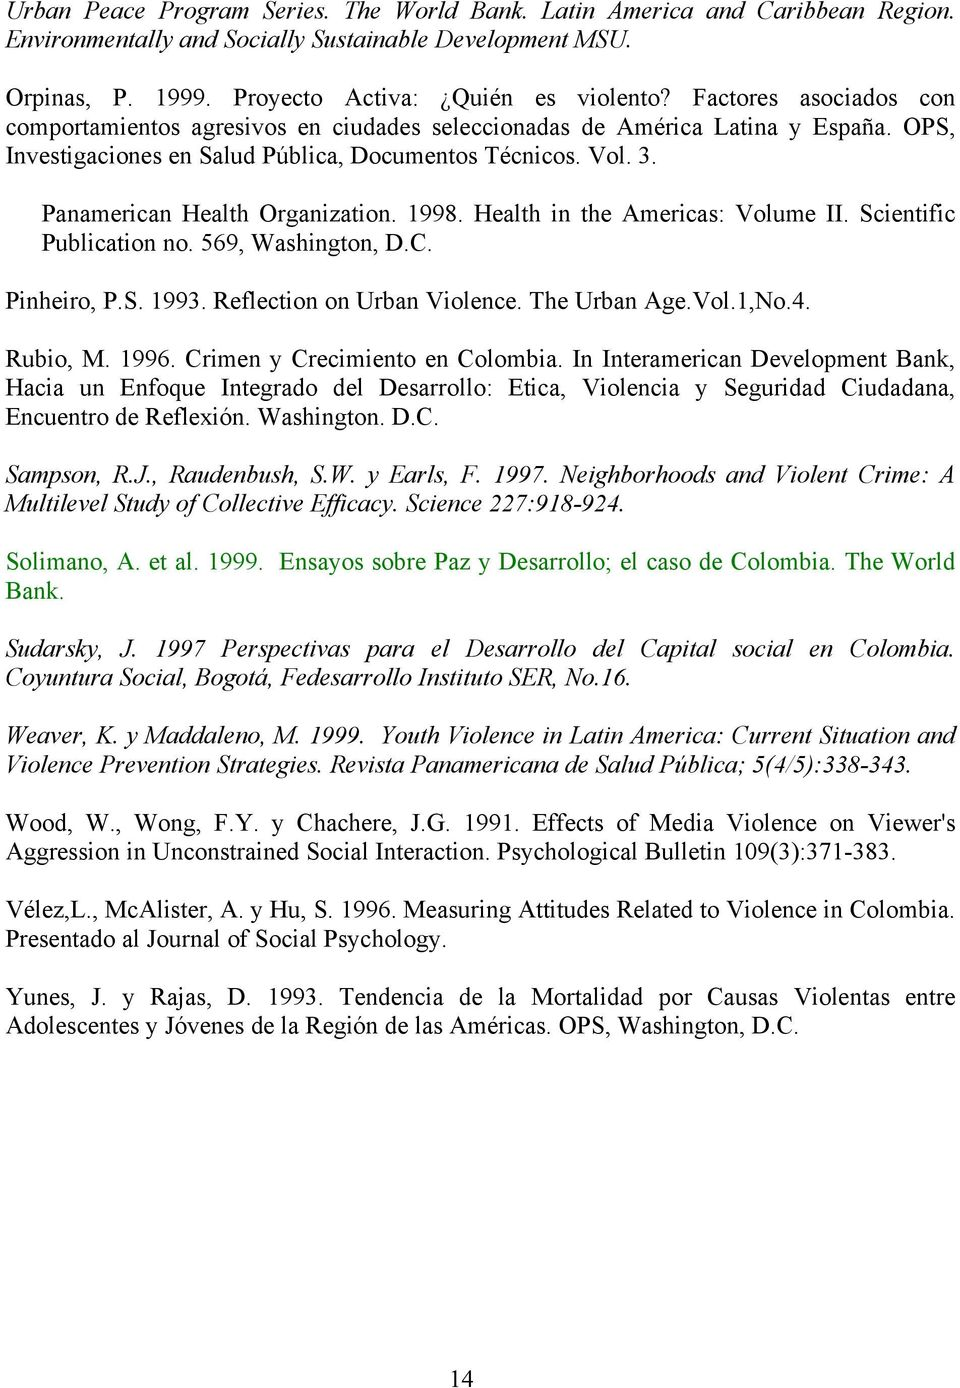 Panamerican Health Organization. 1998. Health in the Americas: Volume II. Scientific Publication no. 569, Washington, D.C. Pinheiro, P.S. 1993. Reflection on Urban Violence. The Urban Age.Vol.1,No.4.